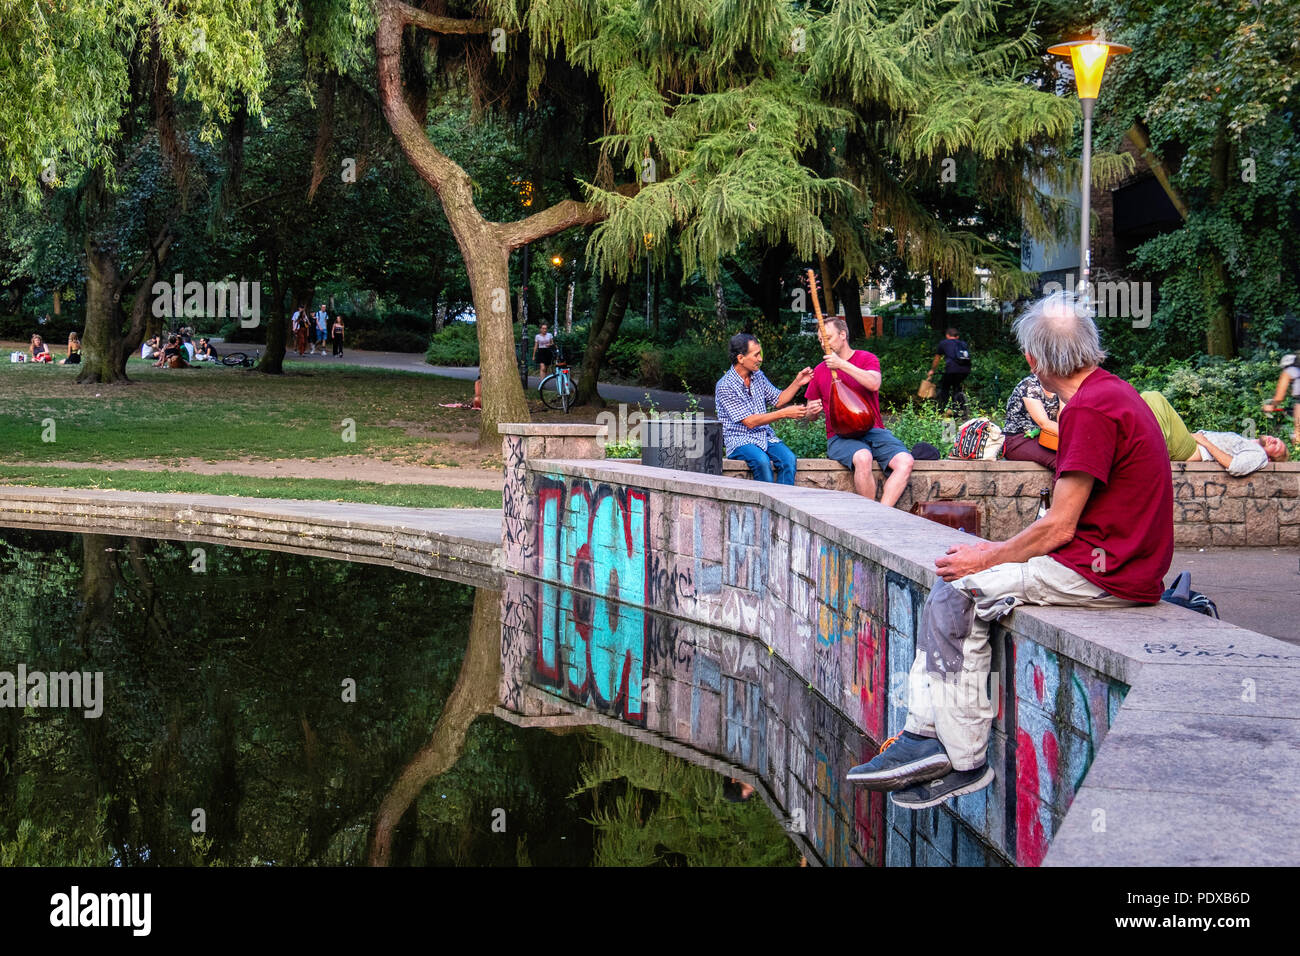 Germany, Berlin, Mitte, Weinbergsweg Park. 9th August 2018. People flock to the public parks to cool off during the intense Summer heatwave credit: Eden Breitz/Alamy Live News - Stock Image